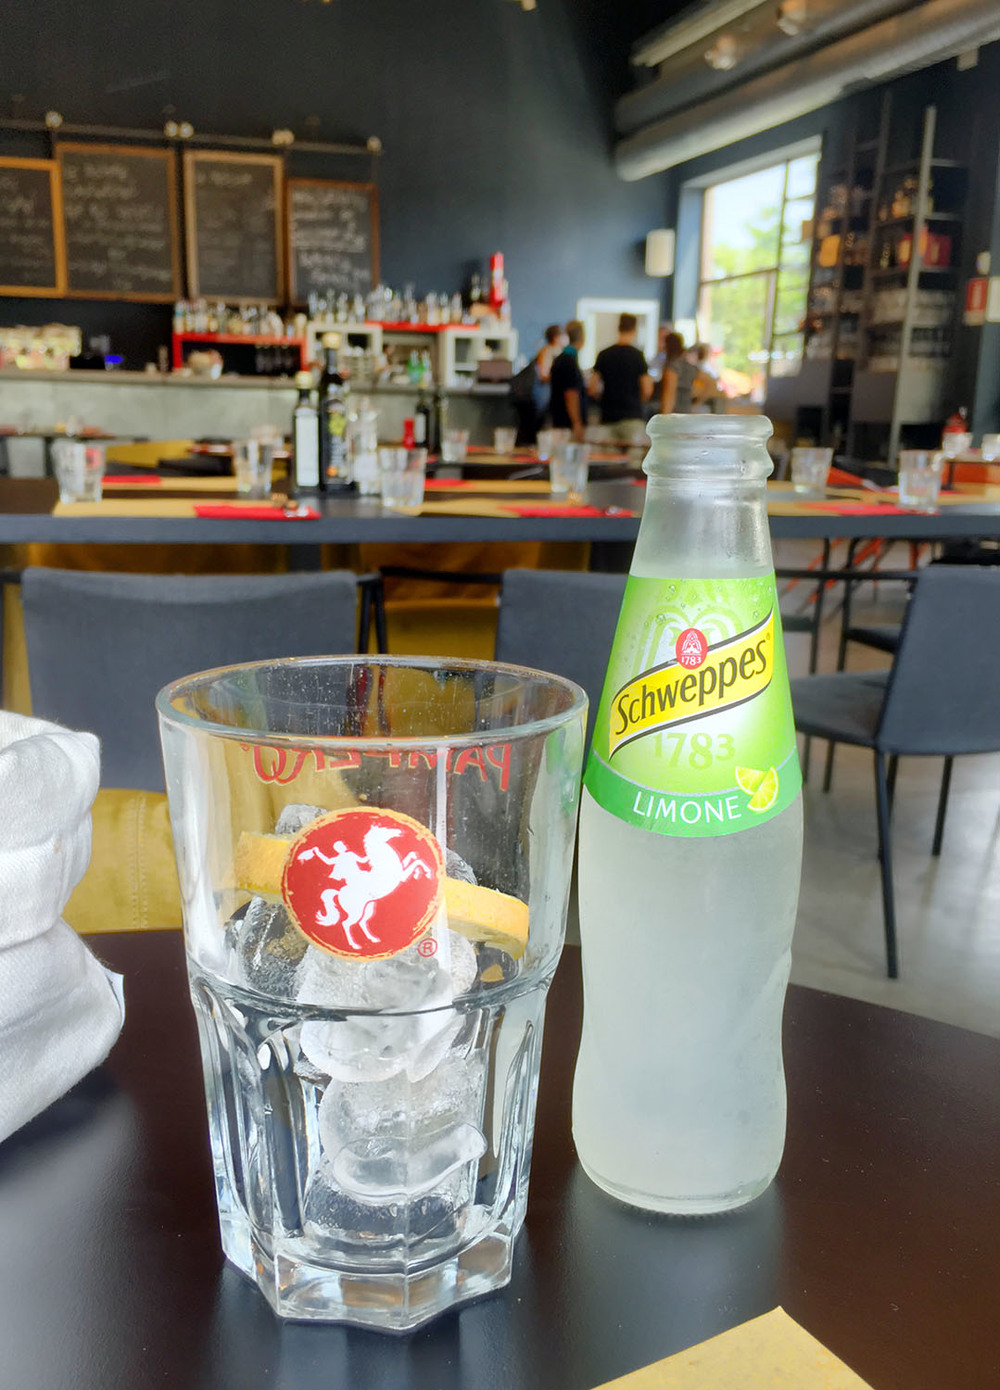 Seriously, get the Schweppes Limone